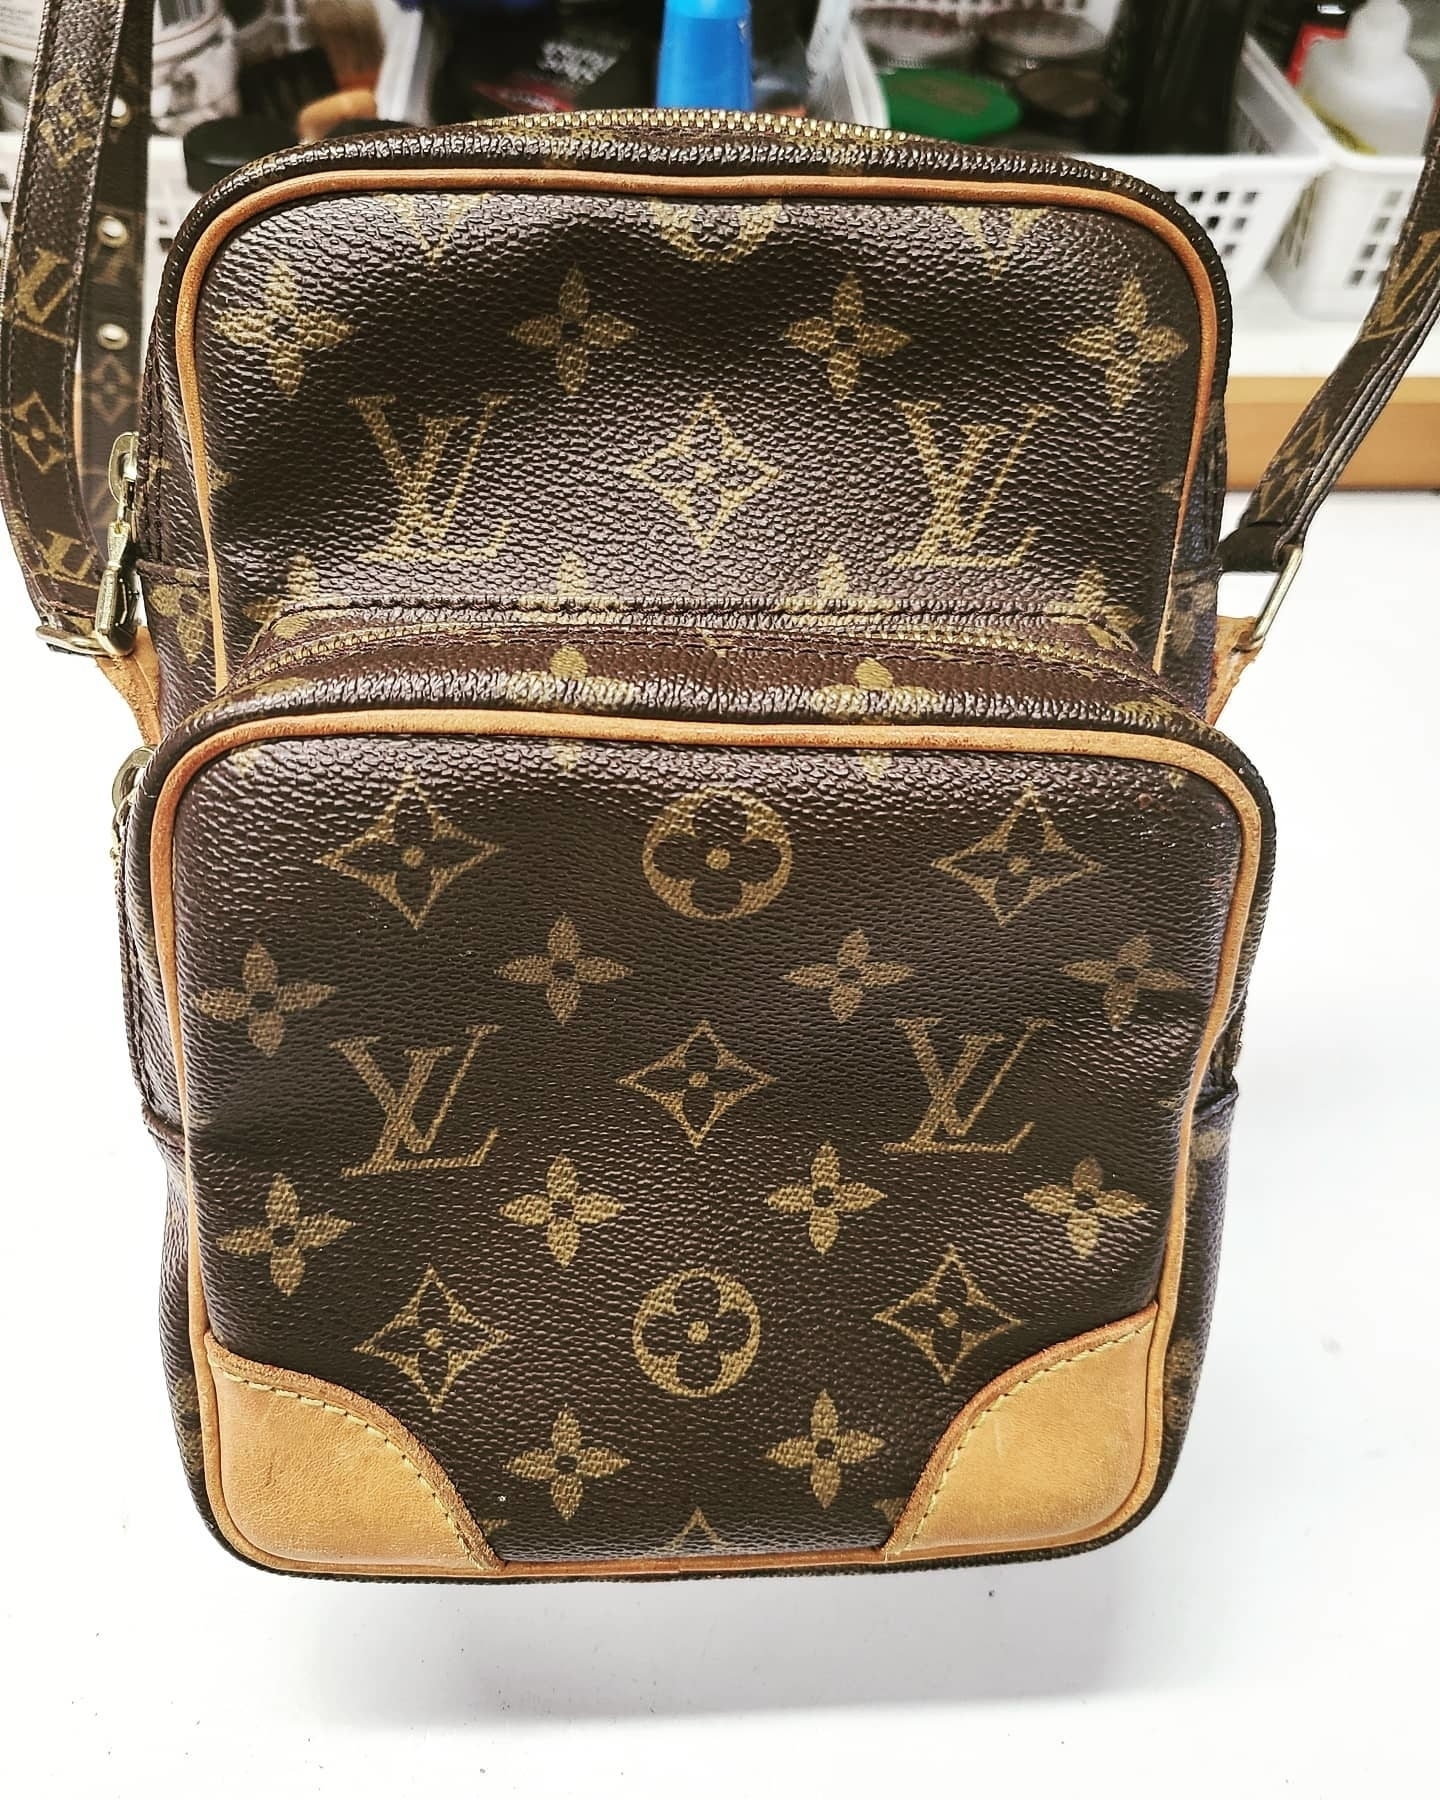 KW Shoe Repair & Sneaker Cleaning Service in Kitchener: Both straps were fixed to this Louis Vuitton luxury purse!